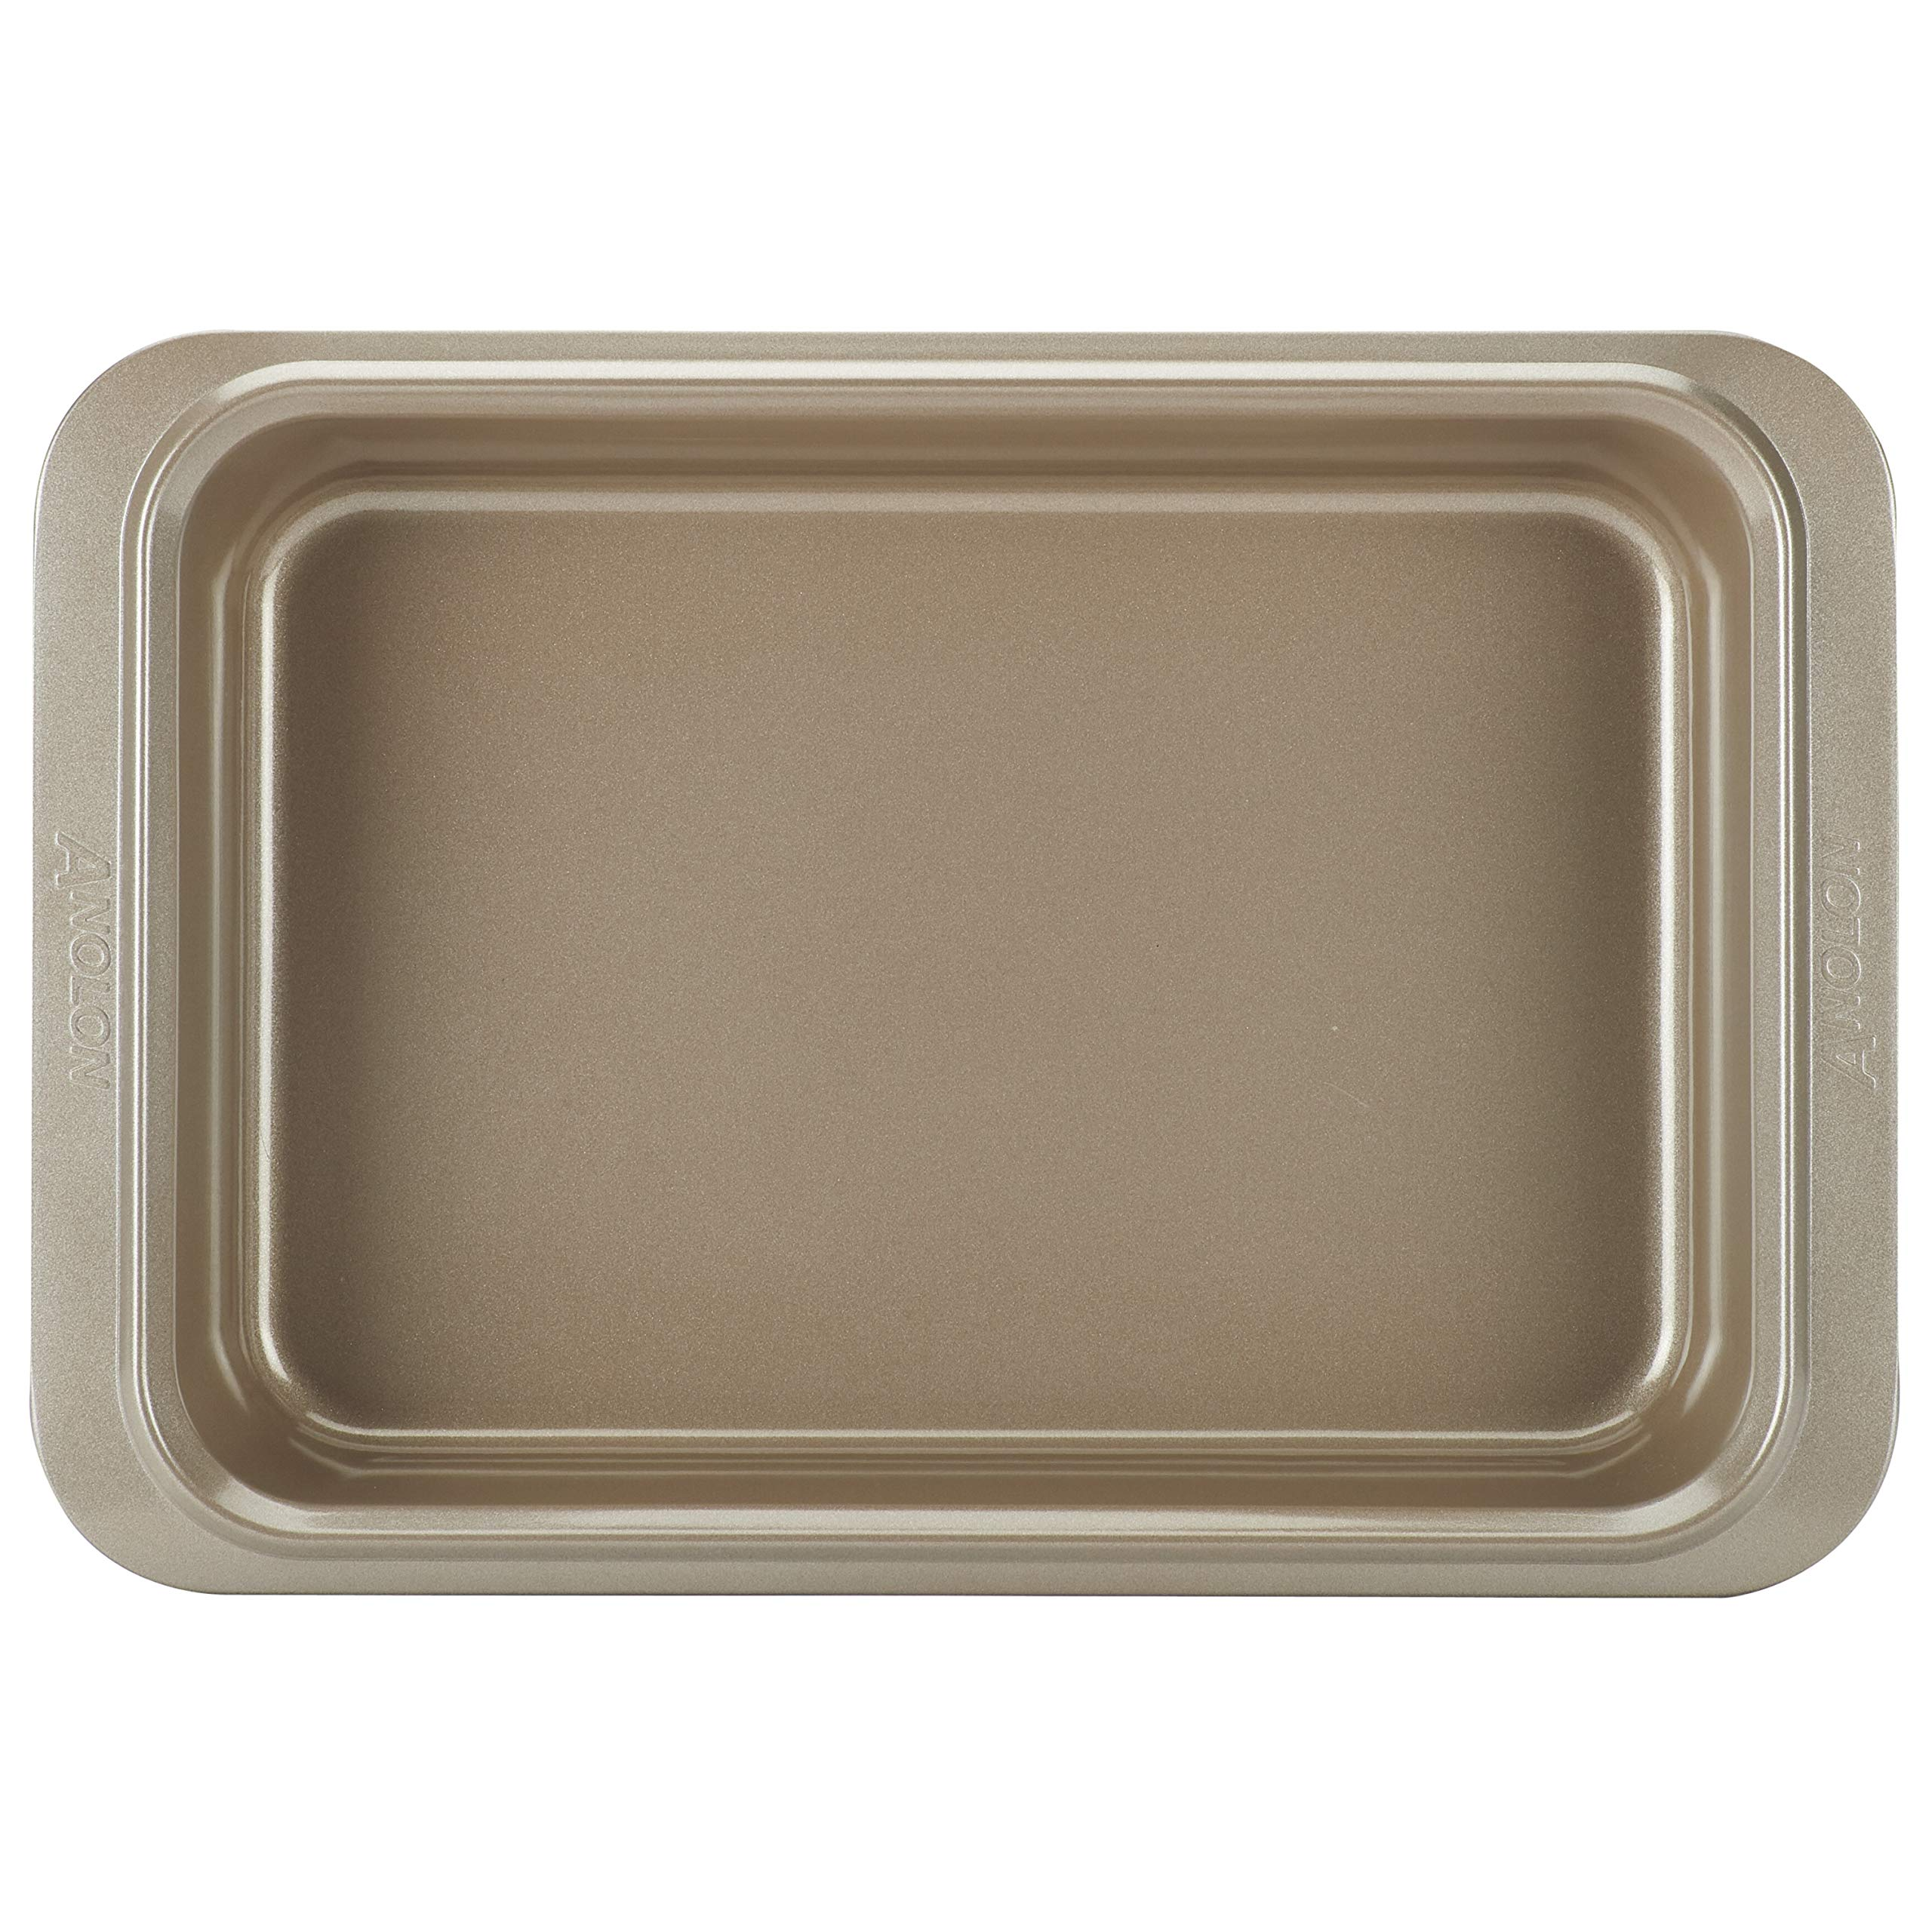 Anolon Eminence Nonstick Bakeware 9-Inch x 13-Inch Rectangular Cake Pan, Onyx with Umber Interior by Anolon (Image #1)